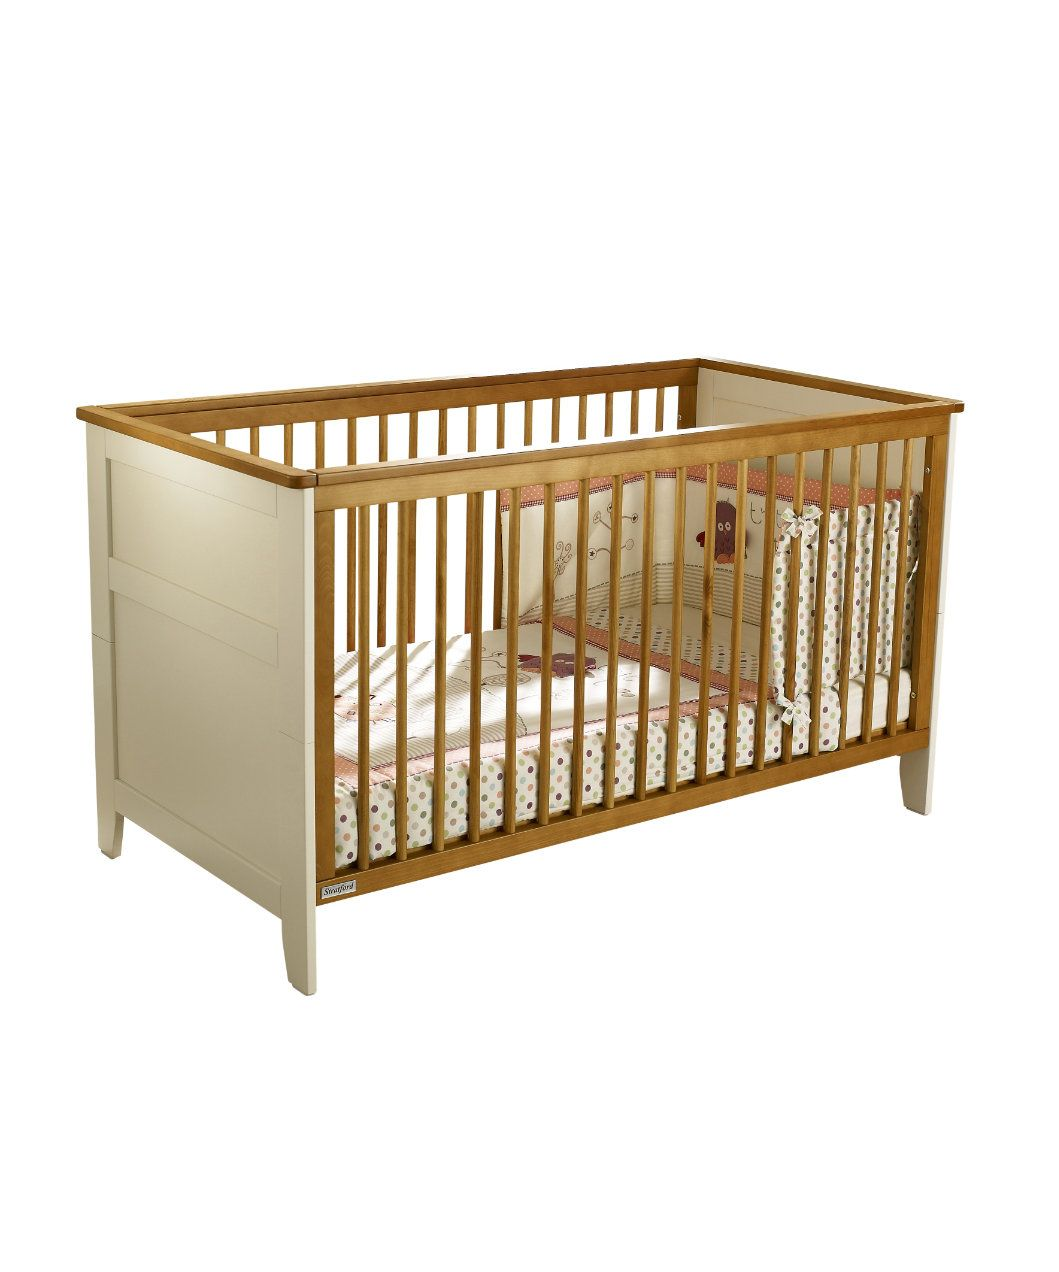 Stratford 4 Piece Nursery Furniture Set Vanilla Pine Sets Mothercare